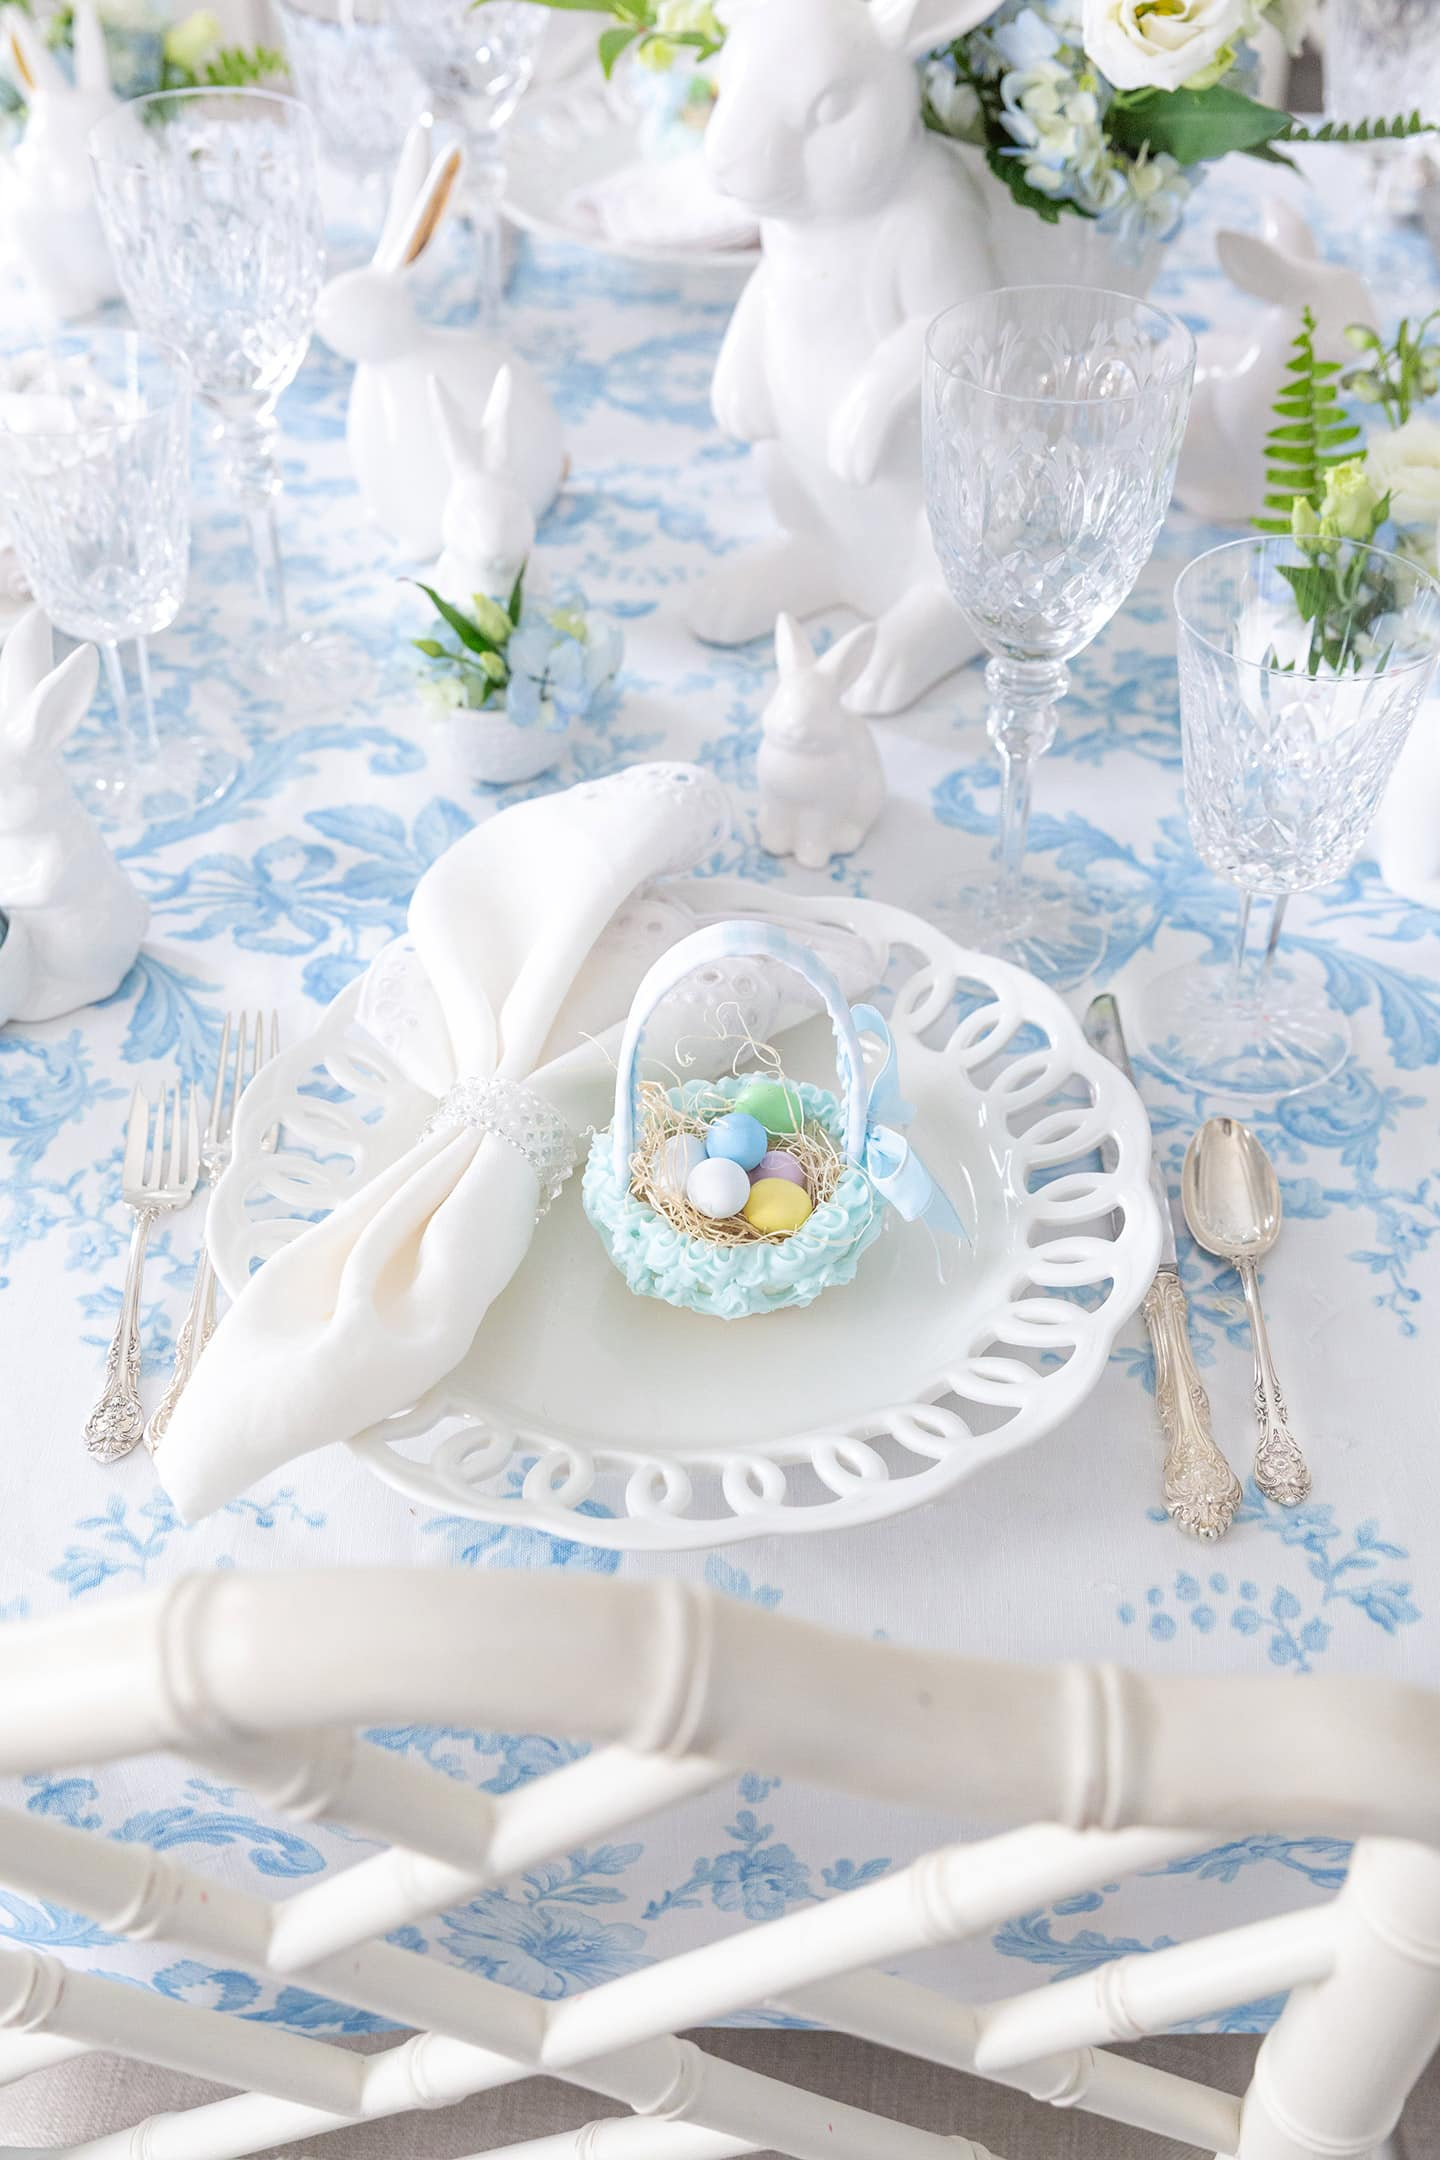 Easter table setting with sugar baskets